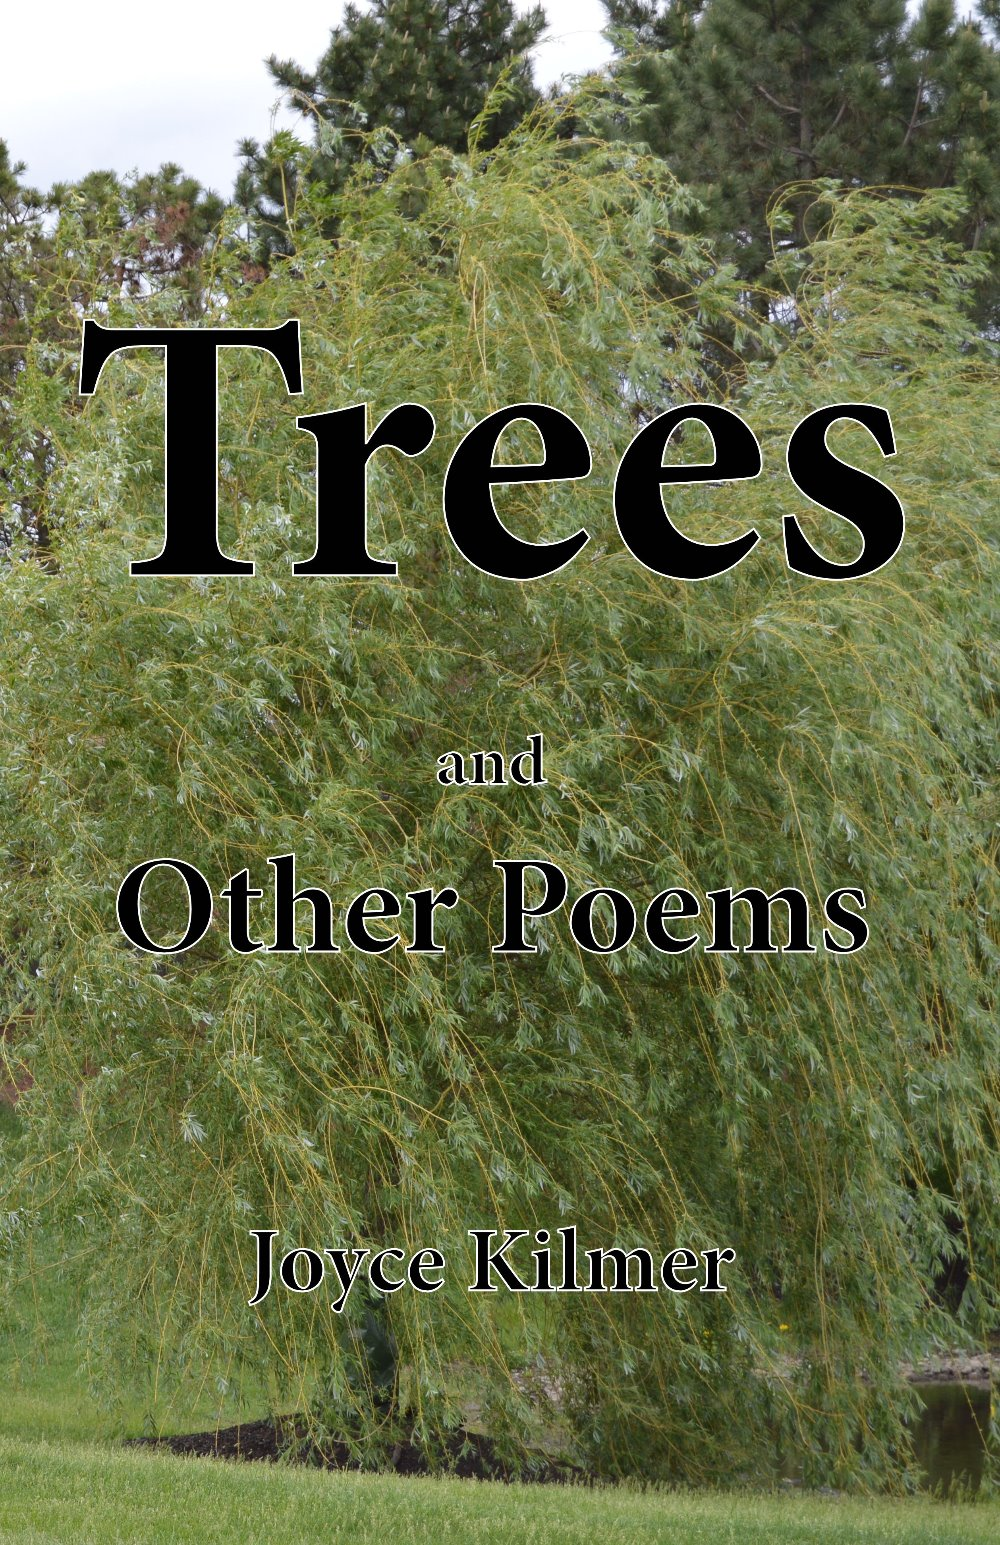 Trees and Other Poems (ePub)